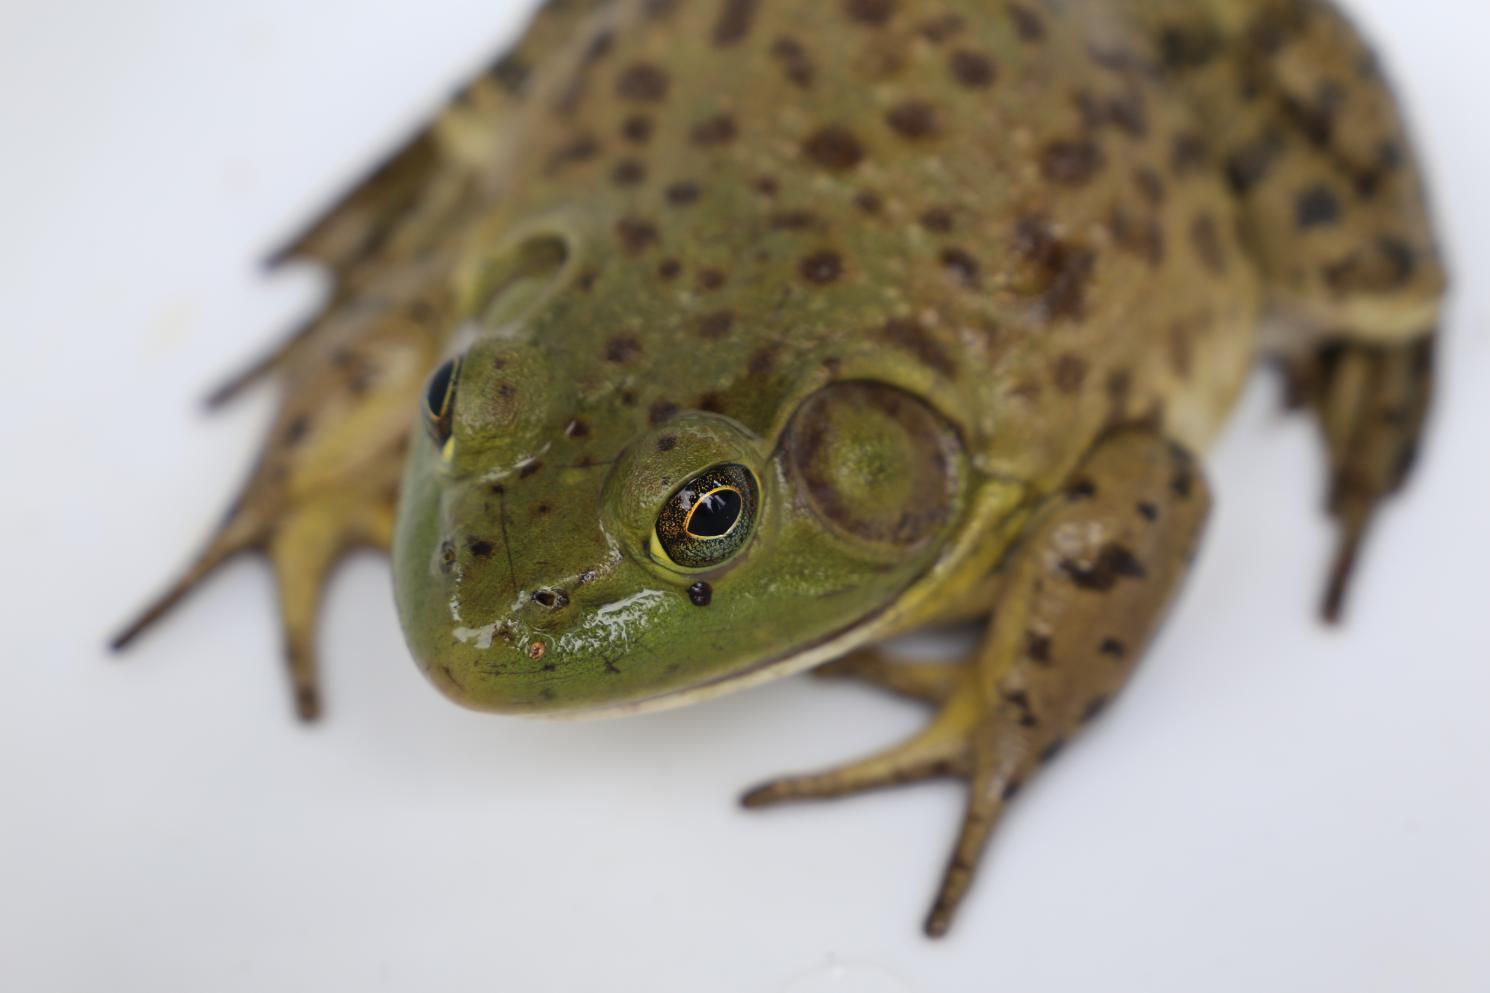 A bullfrog from the top